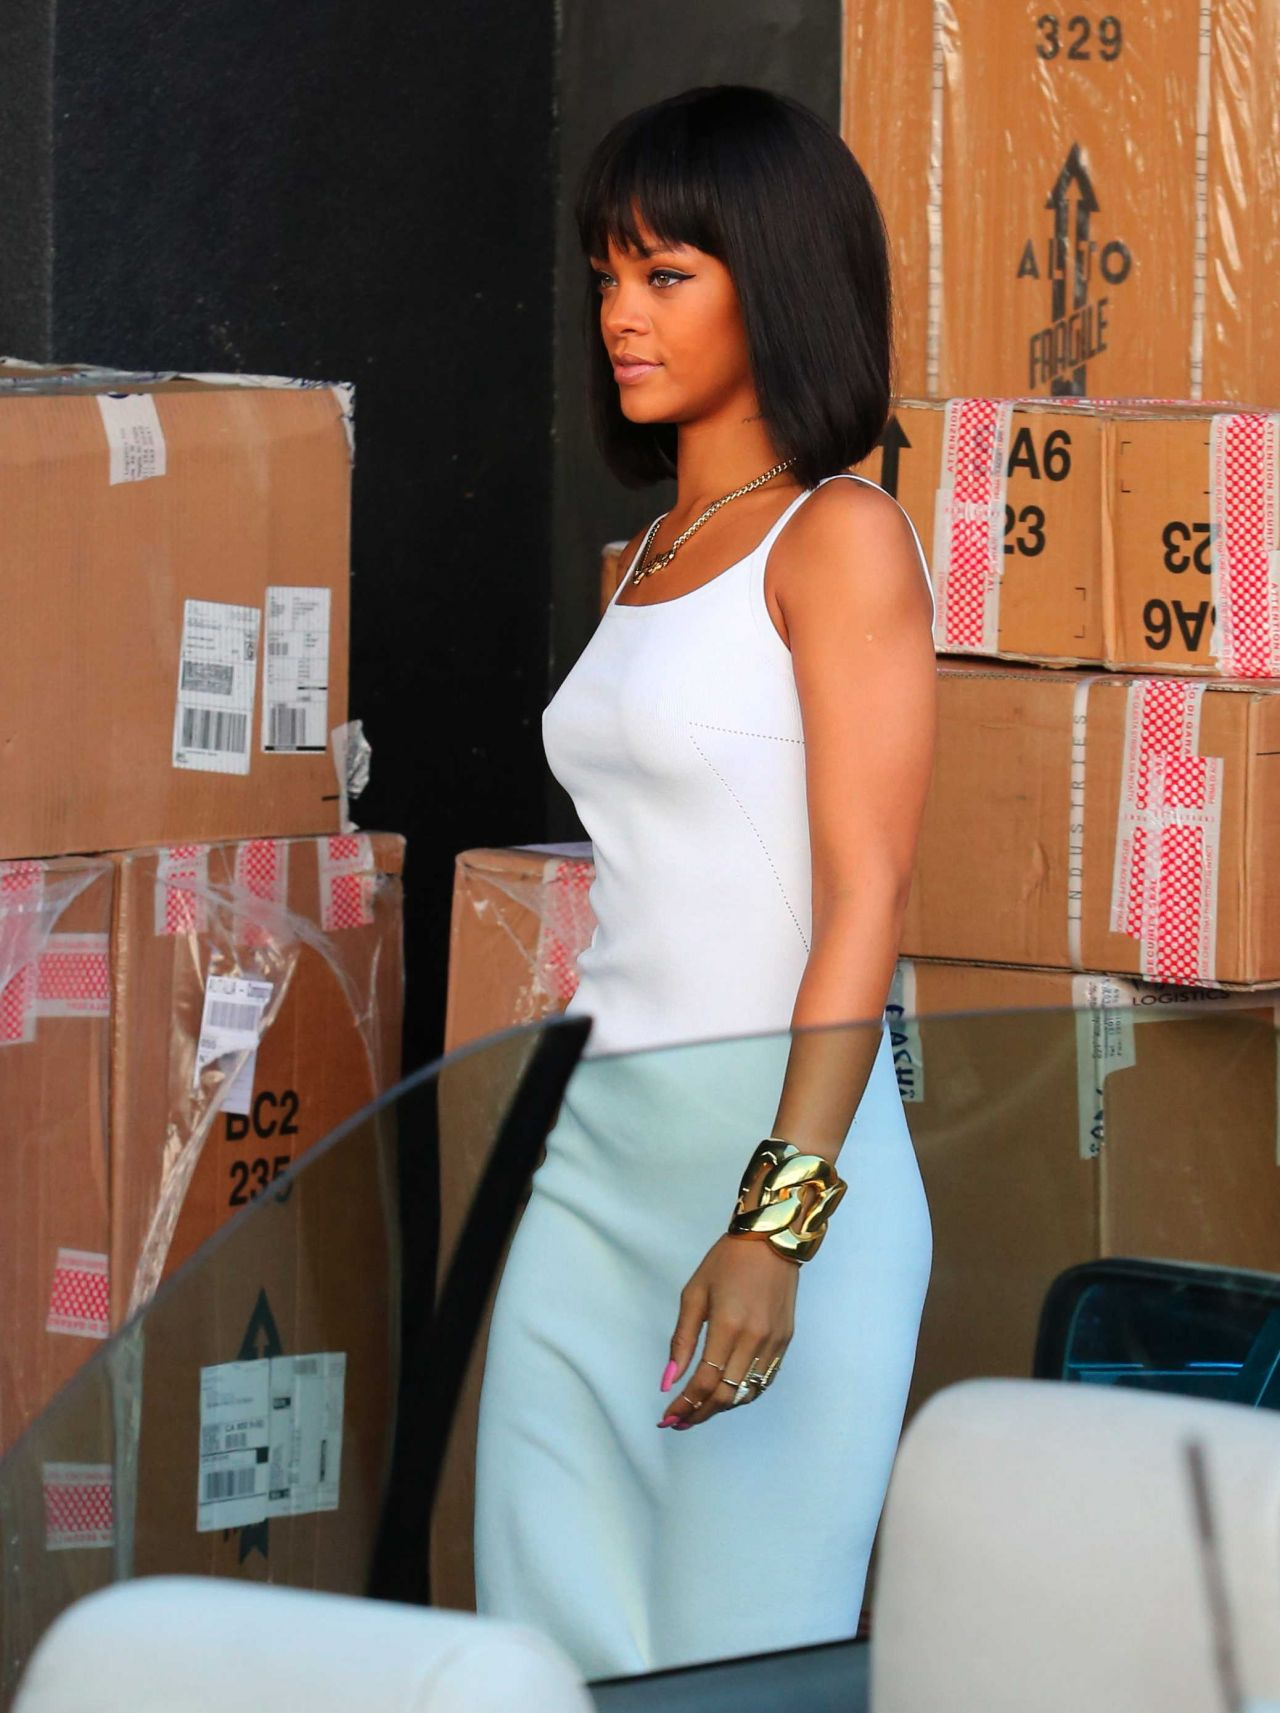 ab4a77046 Rihanna in a White Dress at Moncler Store in Beverly Hills ...